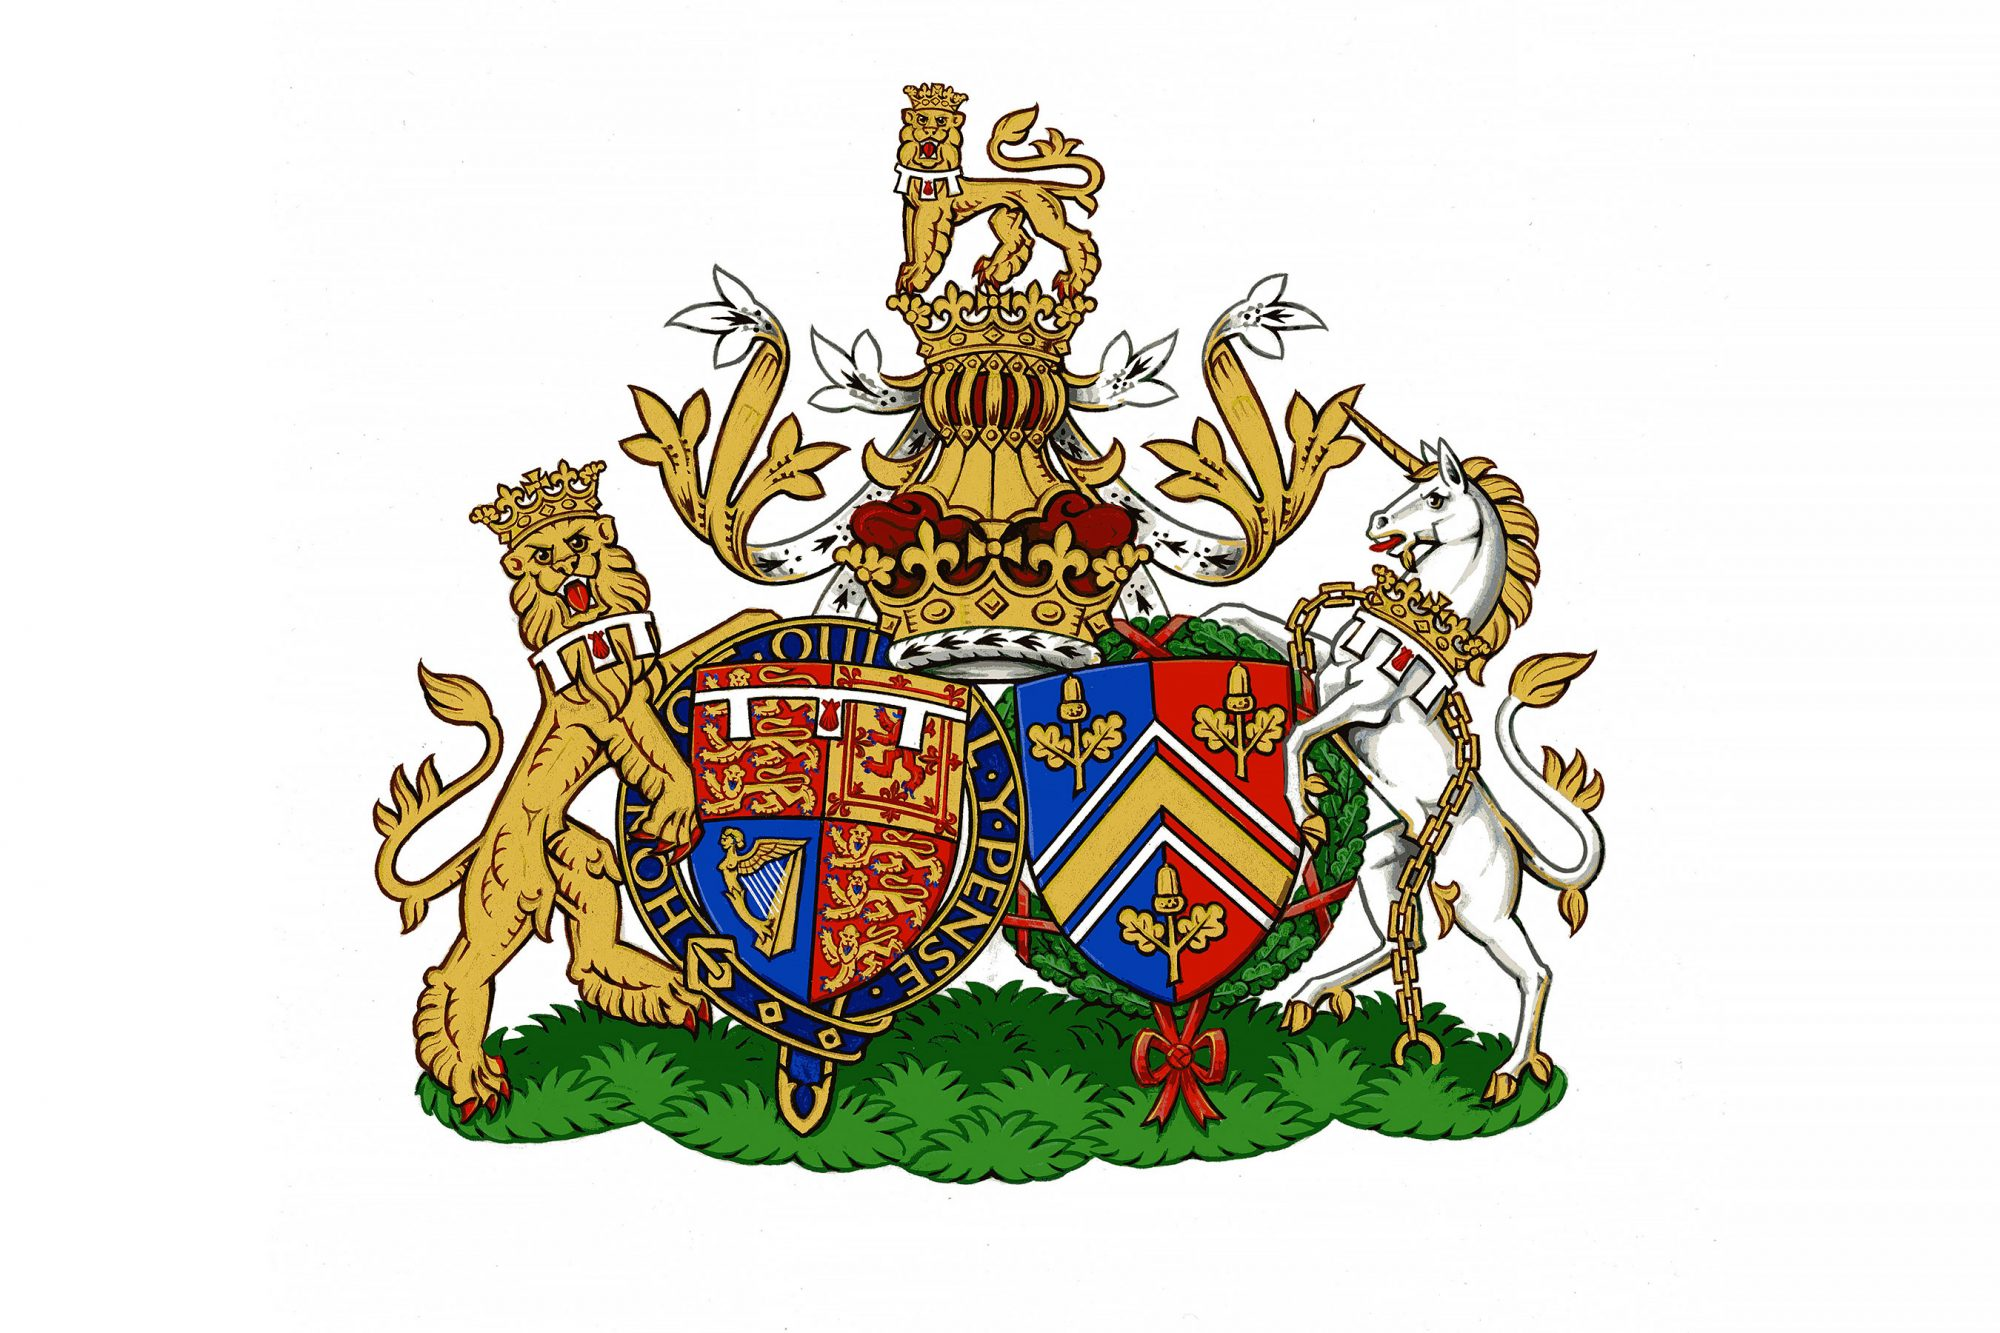 Duke and Duchess of Cambridge's Conjugal Coat of Arms - 27 Sep 2013